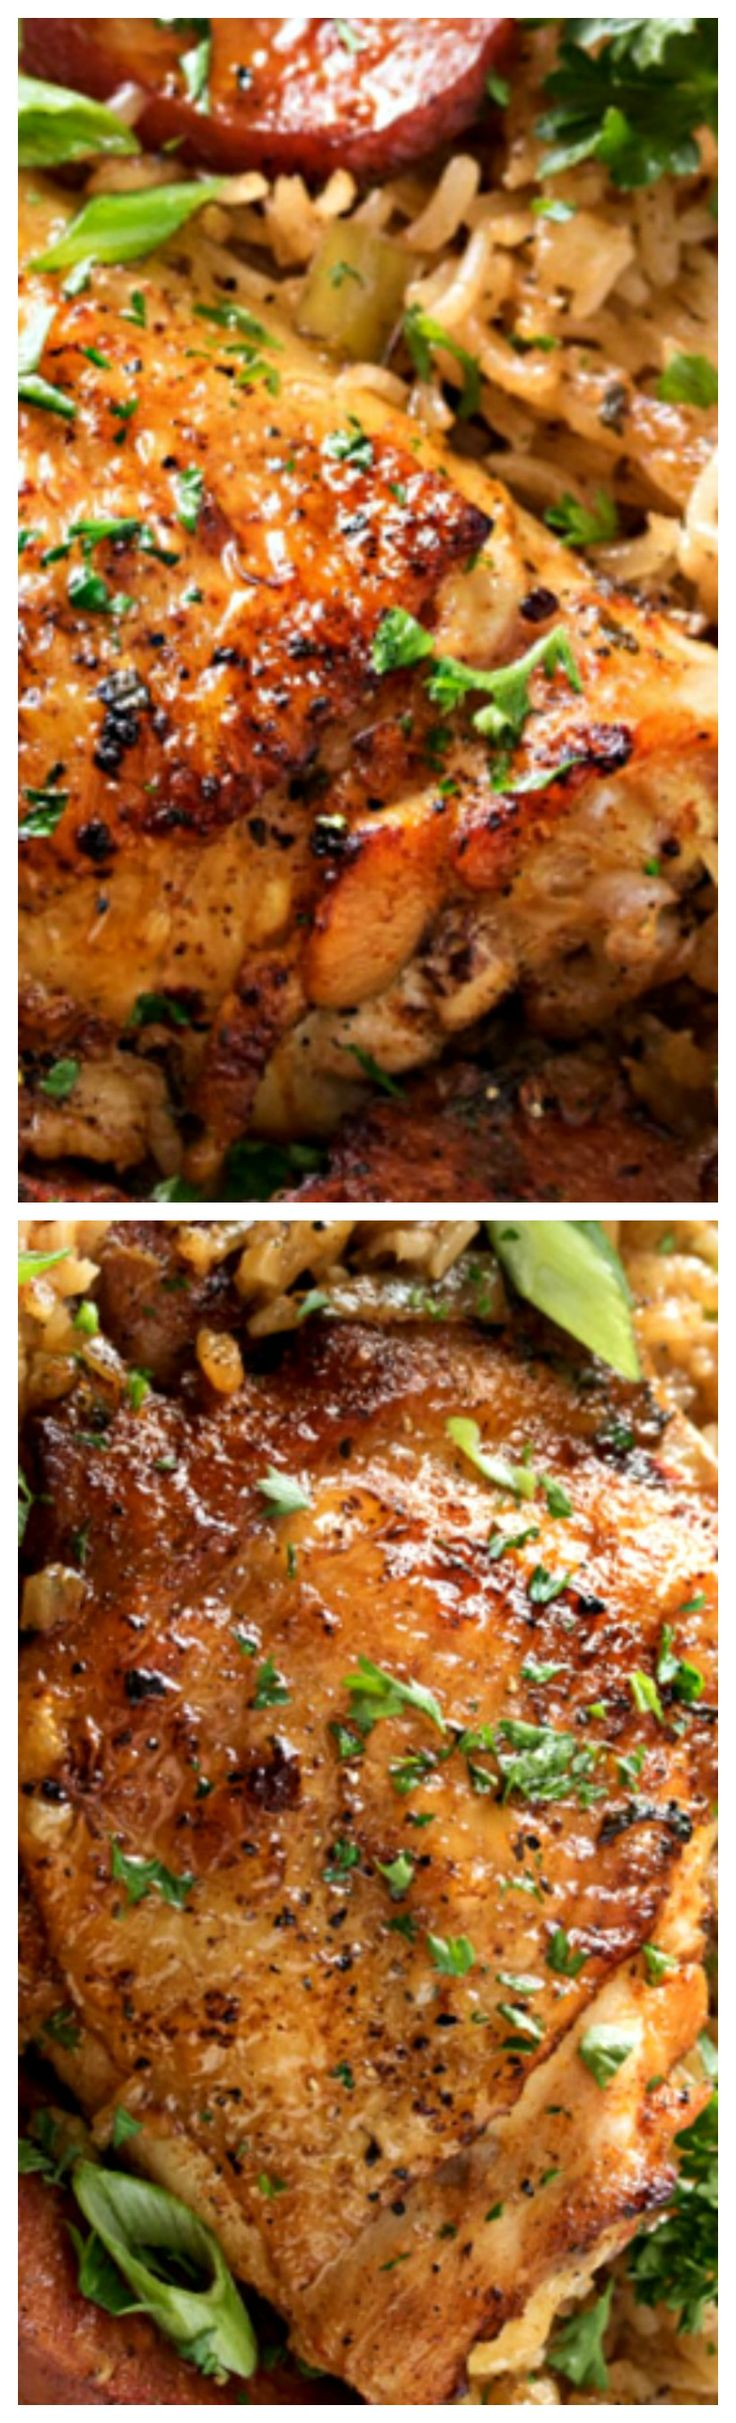 One Pot Chicken and Dirty Rice ~ Amazing Cajun-style flavors collide in this one pot chicken and dirty rice!  The crispy chicken, spicy andouille sausage and fluffy dirty rice… all made from scratch… make each bite a true explosion of flavor!